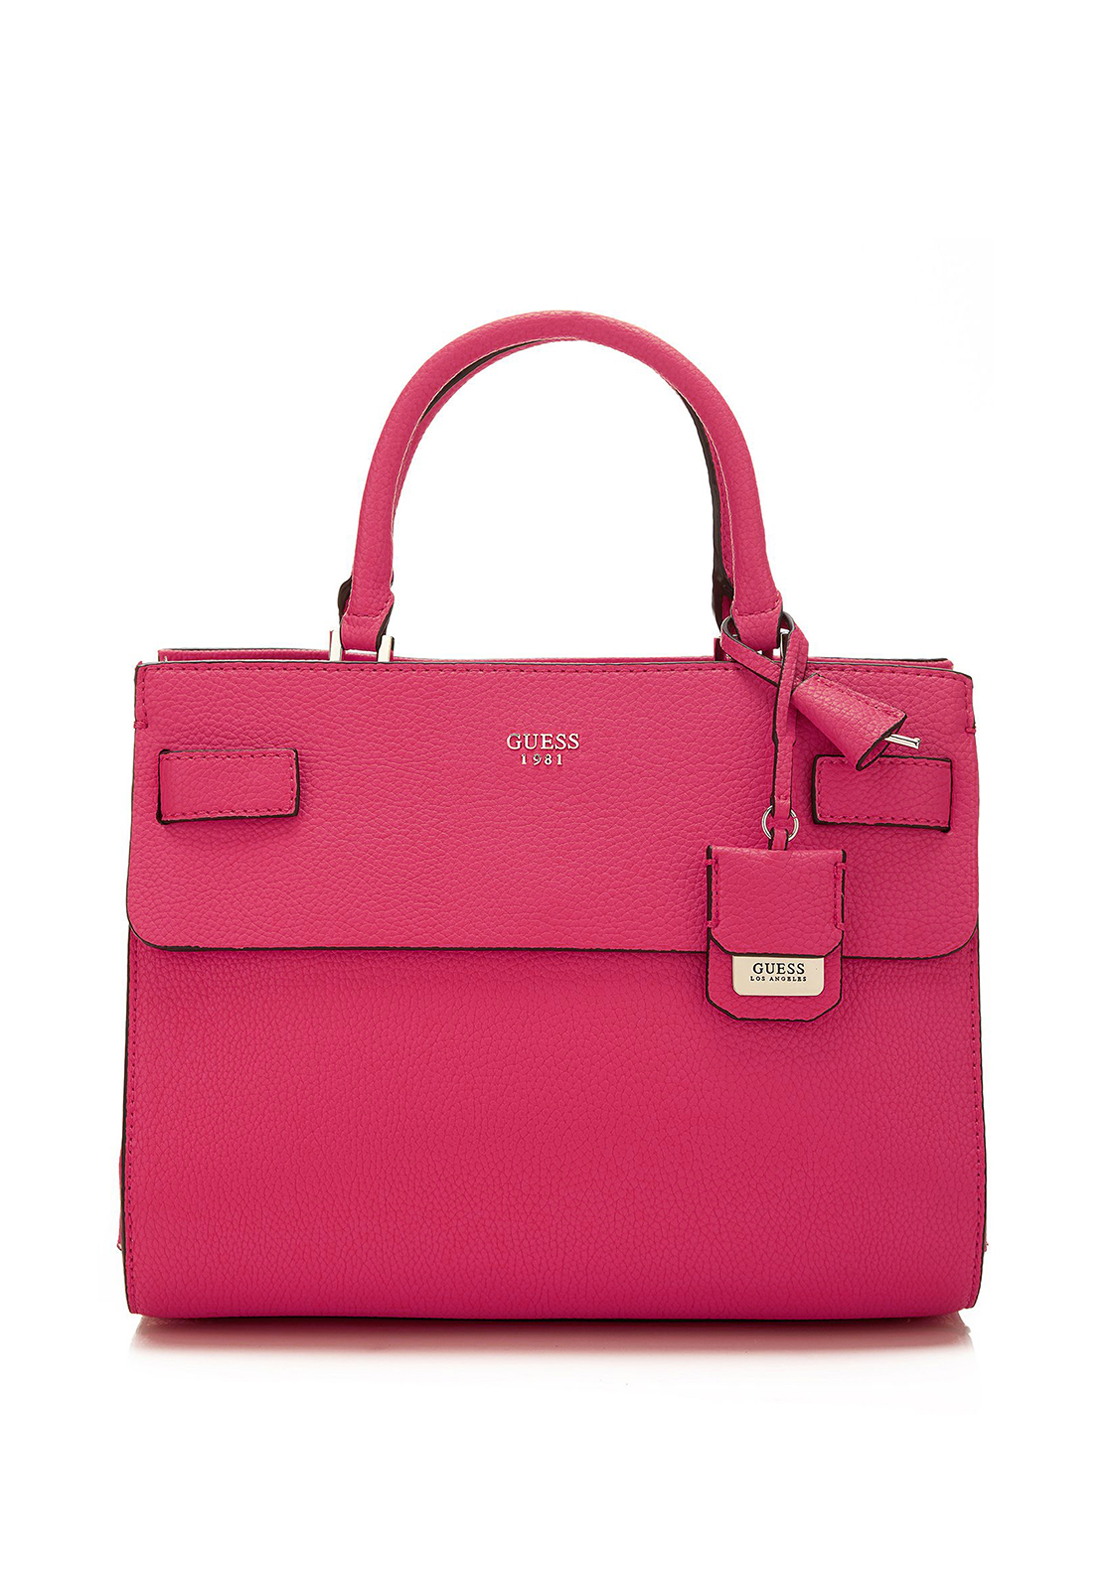 Guess Cate Hand Bag, Fuchsia